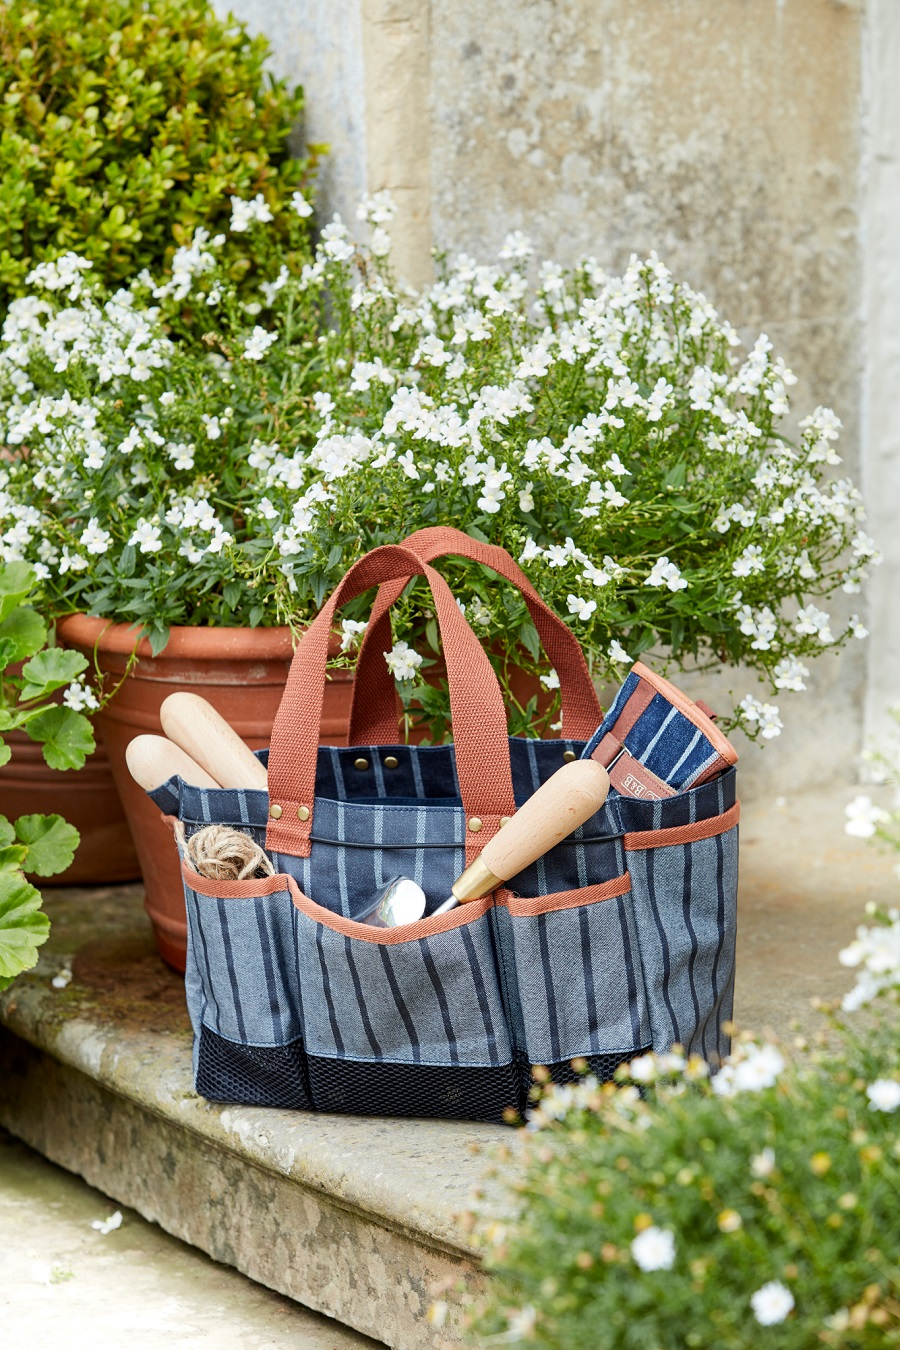 Is Your Garden Ready for Spring